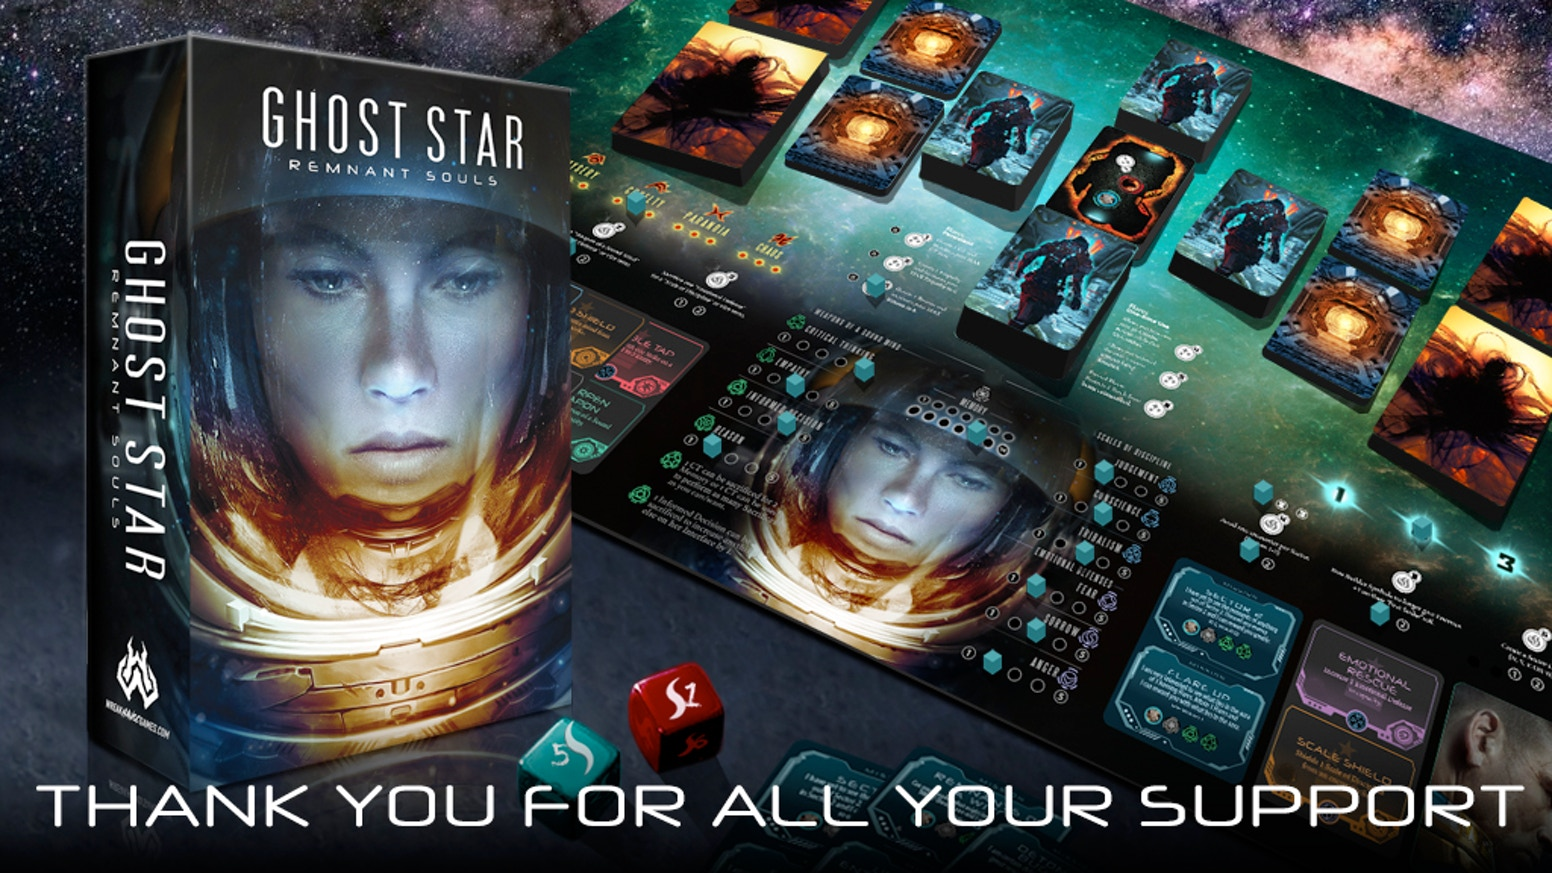 Ghost Star is a space adventure game with elements of exploration, character development, strategy and combat against alien entities.